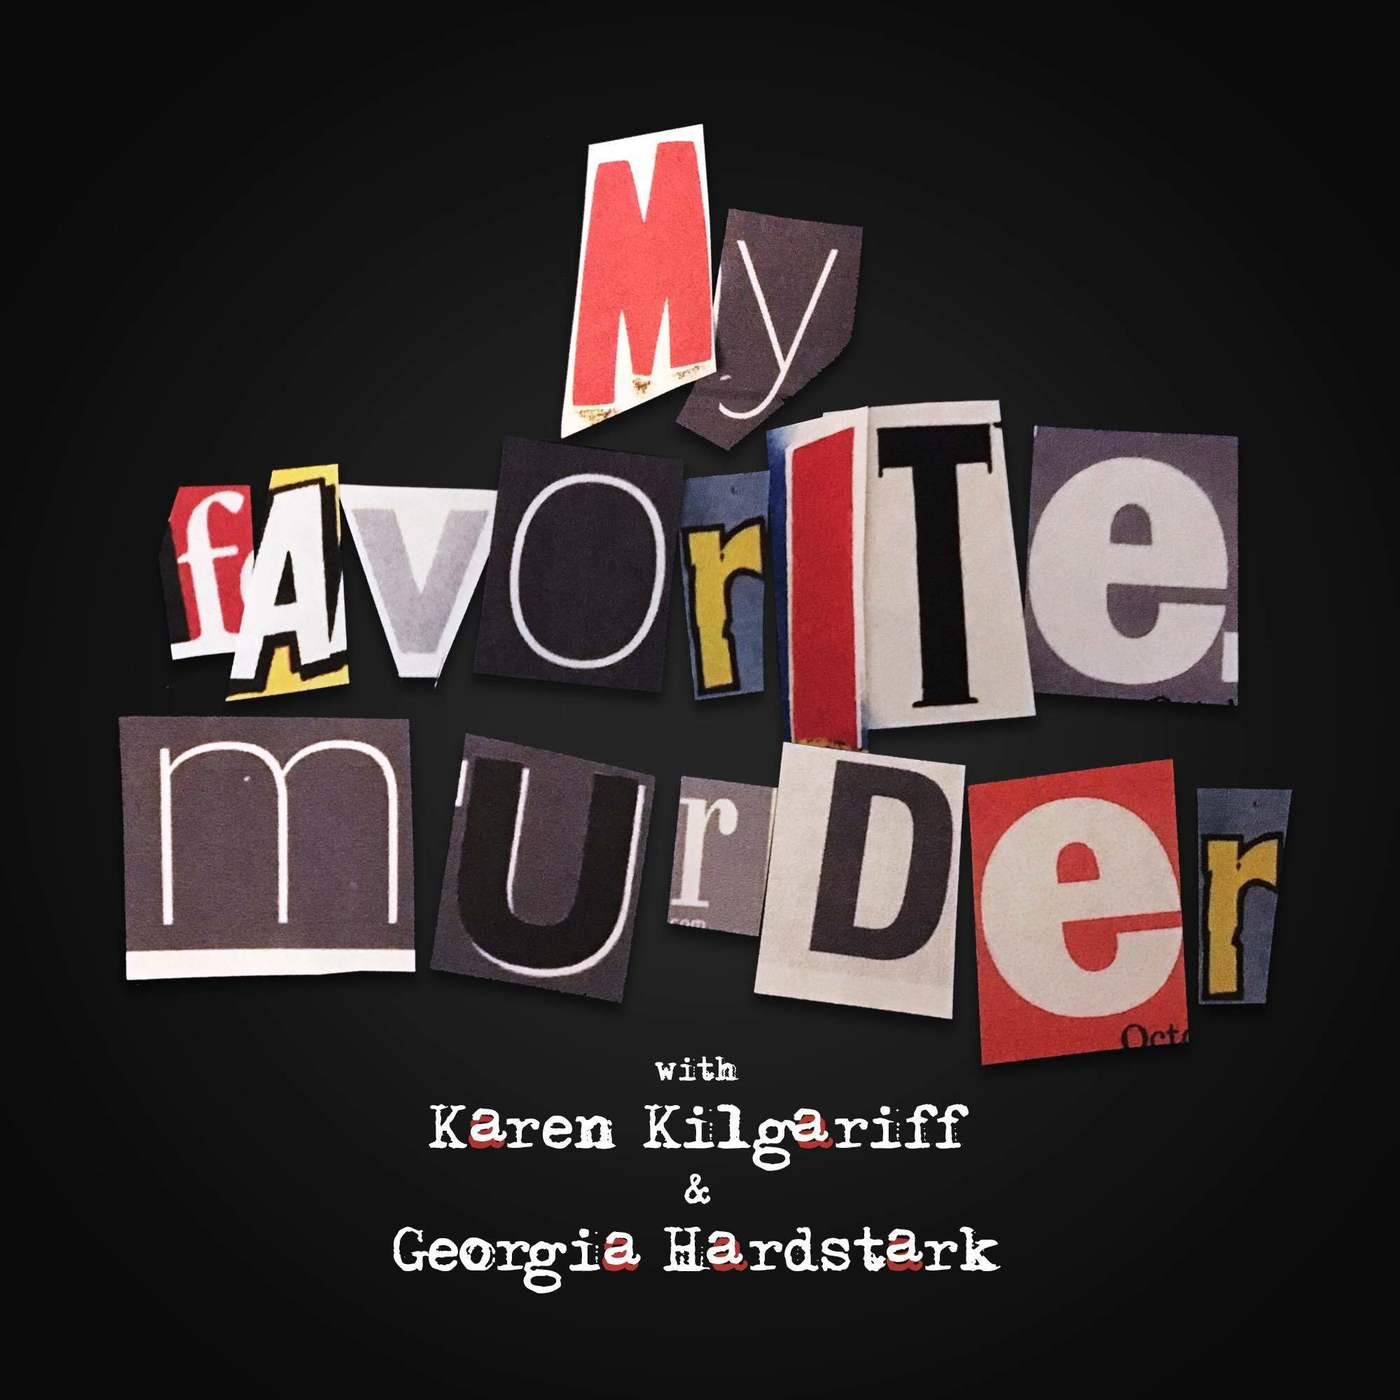 My Favorite Murder with Karen Kilgariff and Georgia Hardstark